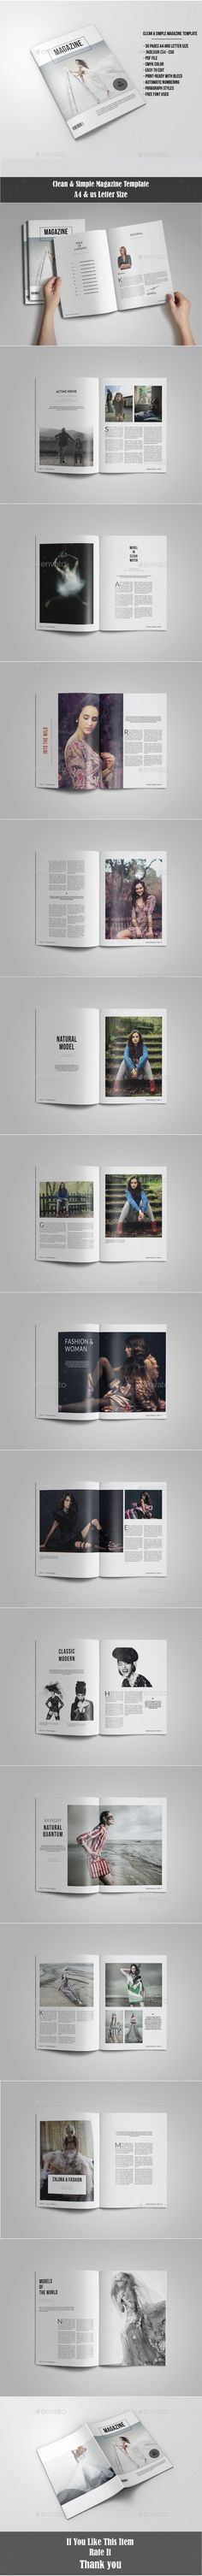 Professional Magazine A4 - 28 pages | Paragraph, Texts and Magazines